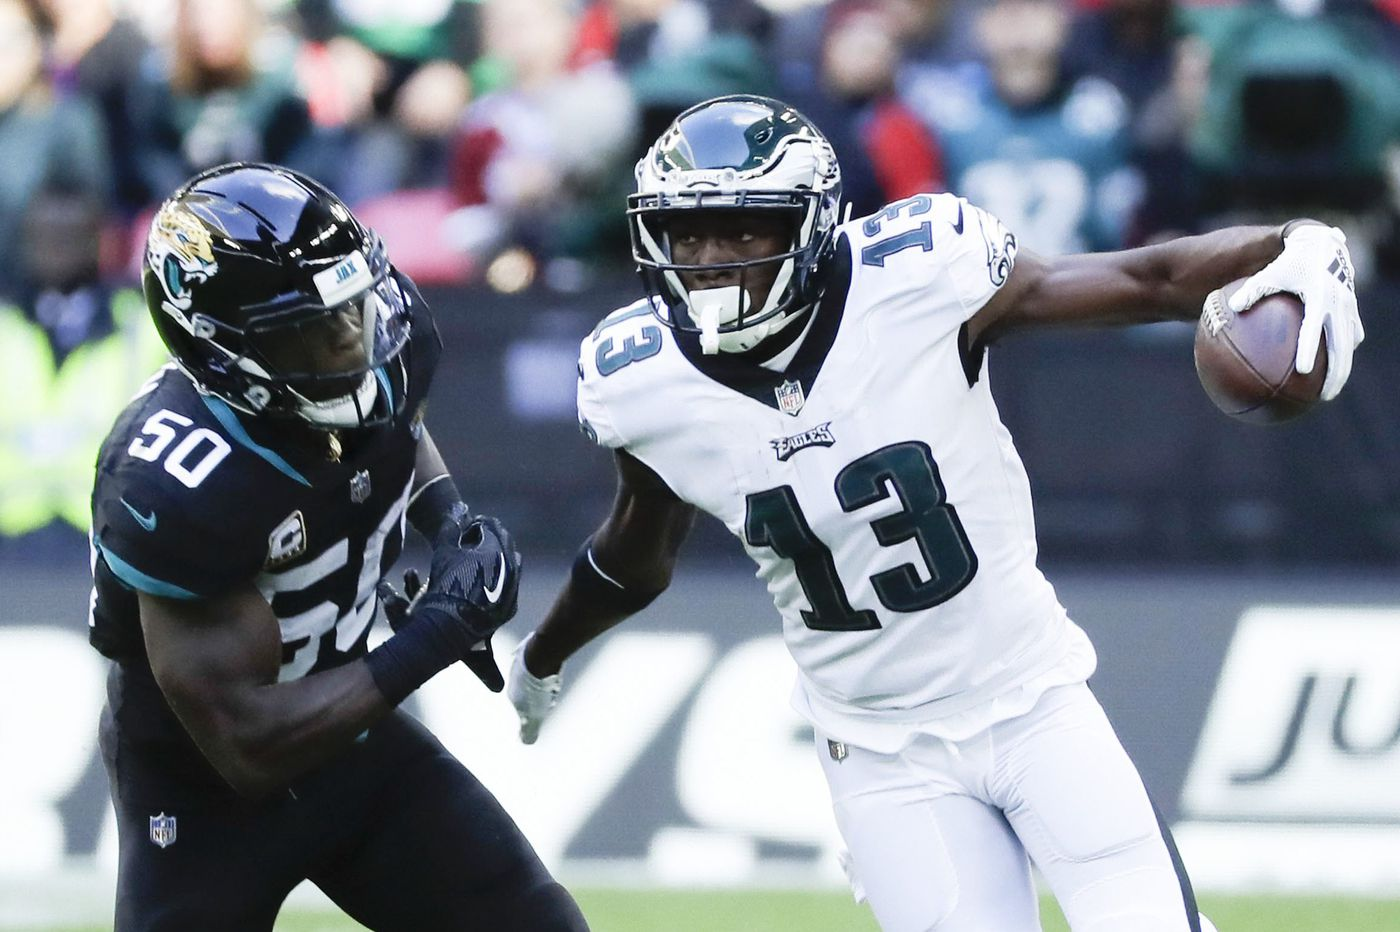 Eagles' win in London still could pay off for bettors | Sports betting